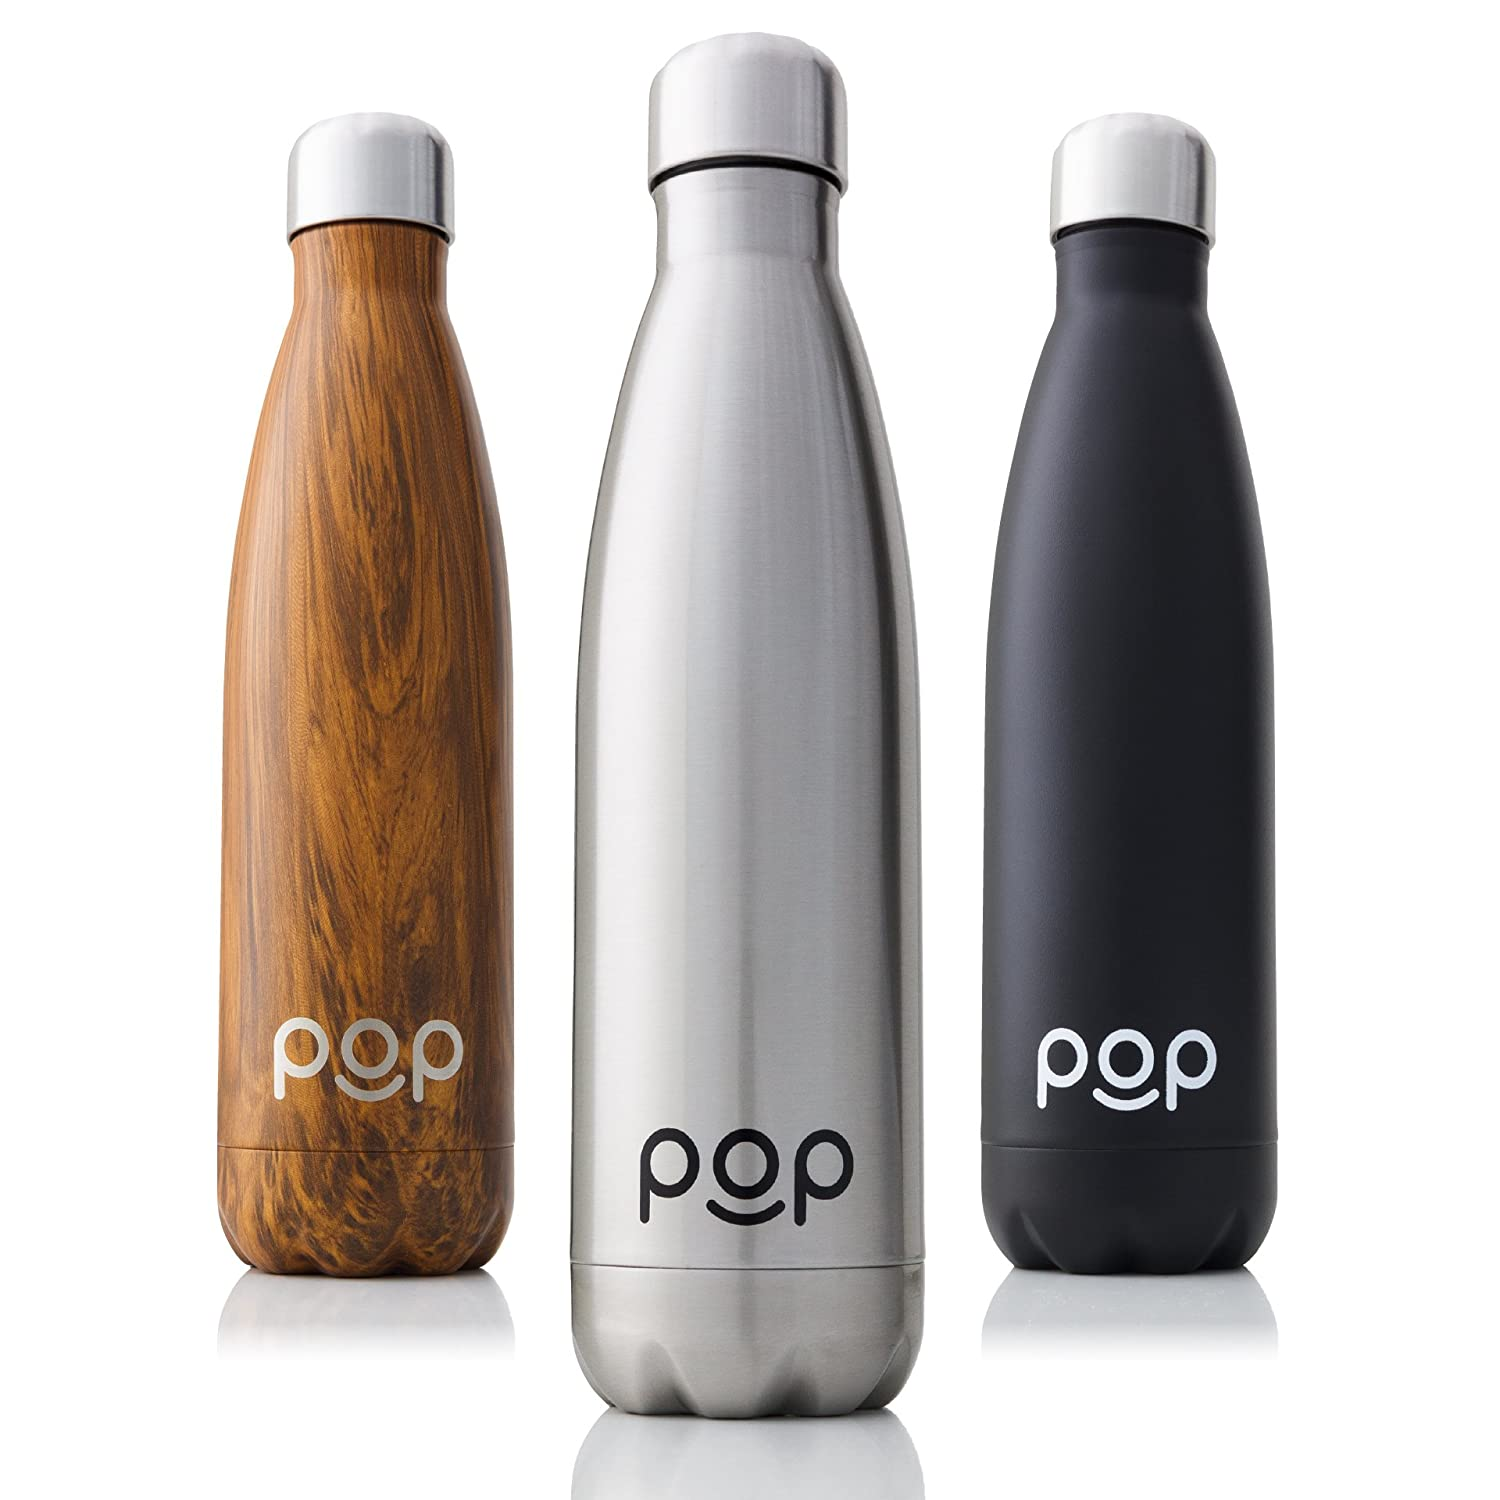 POP Design Stainless Steel Vacuum Insulated Water Bottle | Keeps Cold 24hrs. or Hot for 12hrs. | Sweat & Leak-Proof | Narrow Mouth & BPA Free | 17 Oz (500ml) or 25 Oz (740ml) | 3 Colors